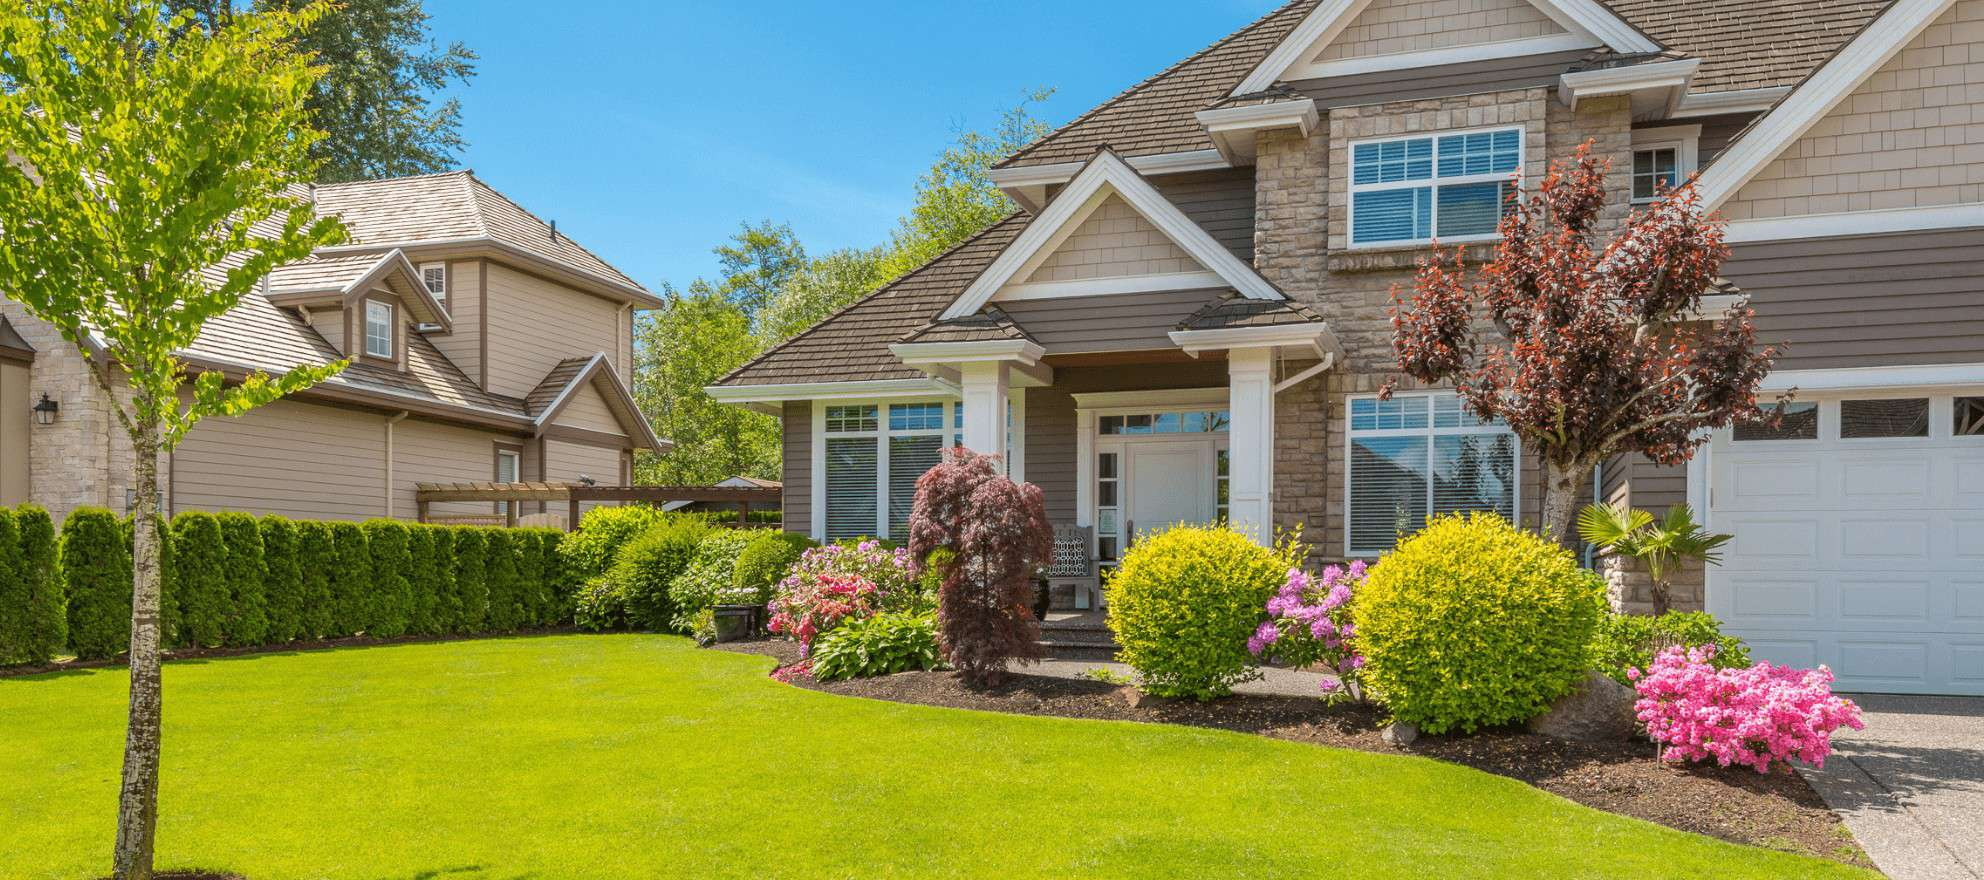 Photo of Increase Your Home Value: Improve Your Curb Appeal